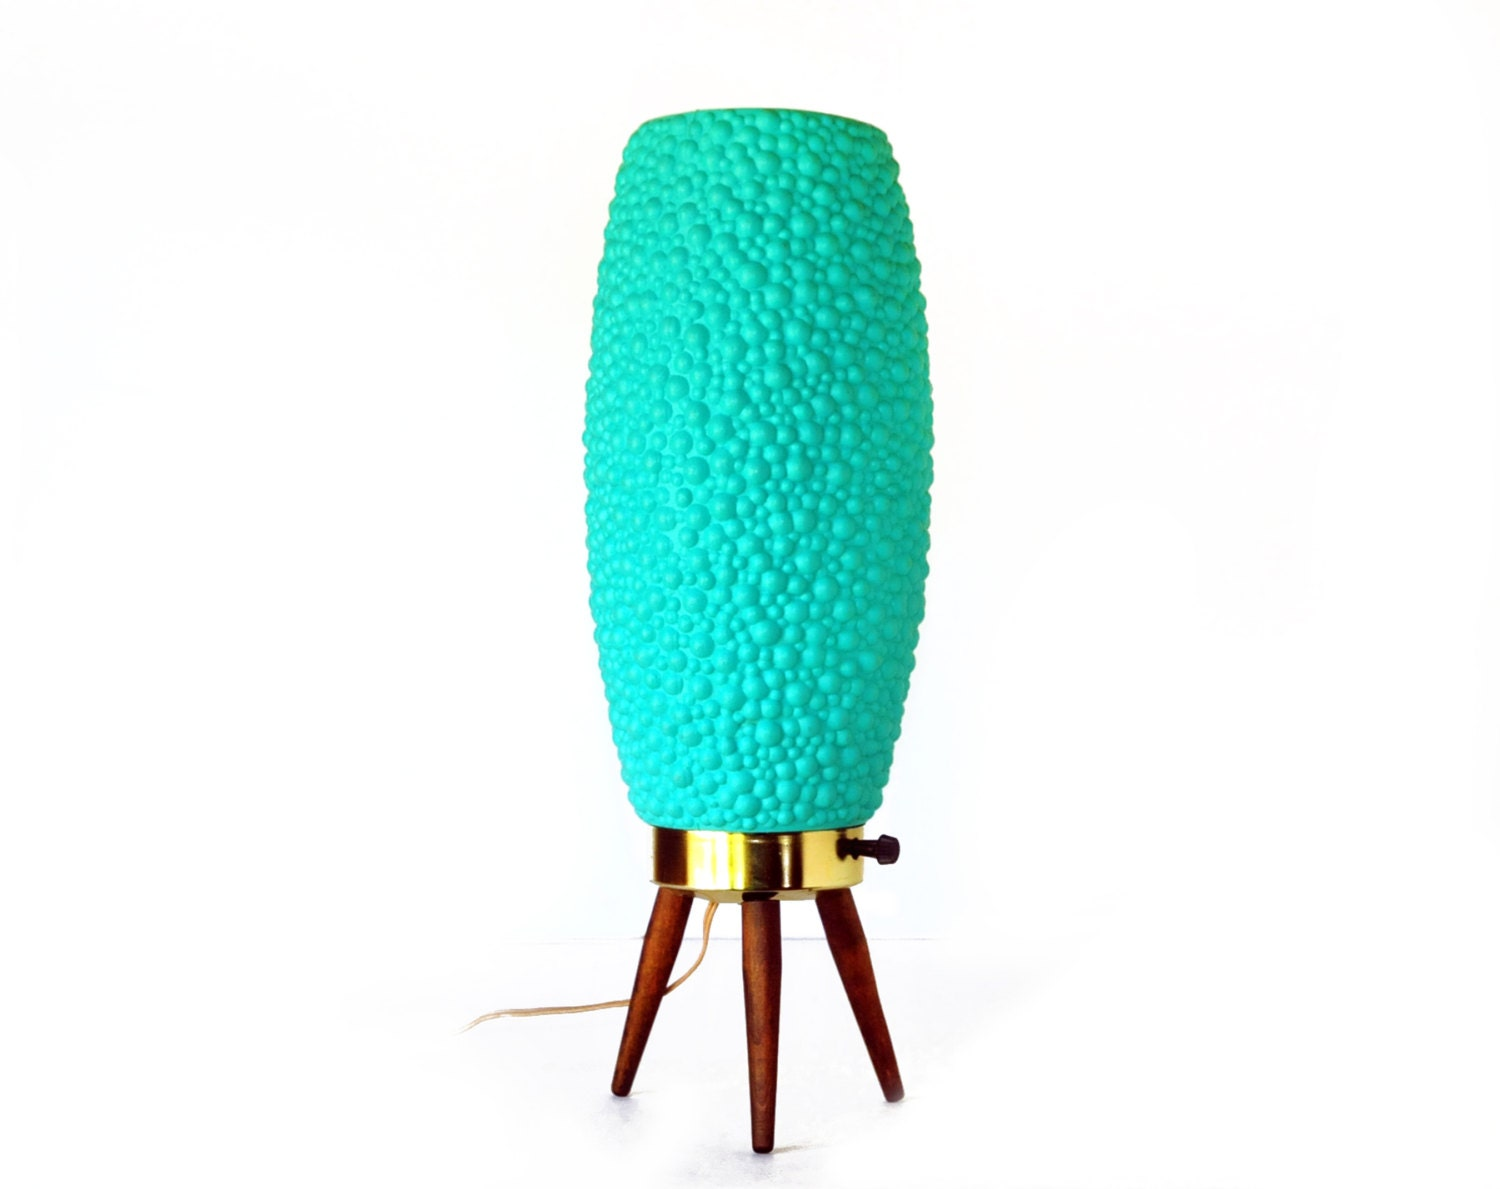 Beehive Lamp Mid Century Modern16 5 Teal Turquoise